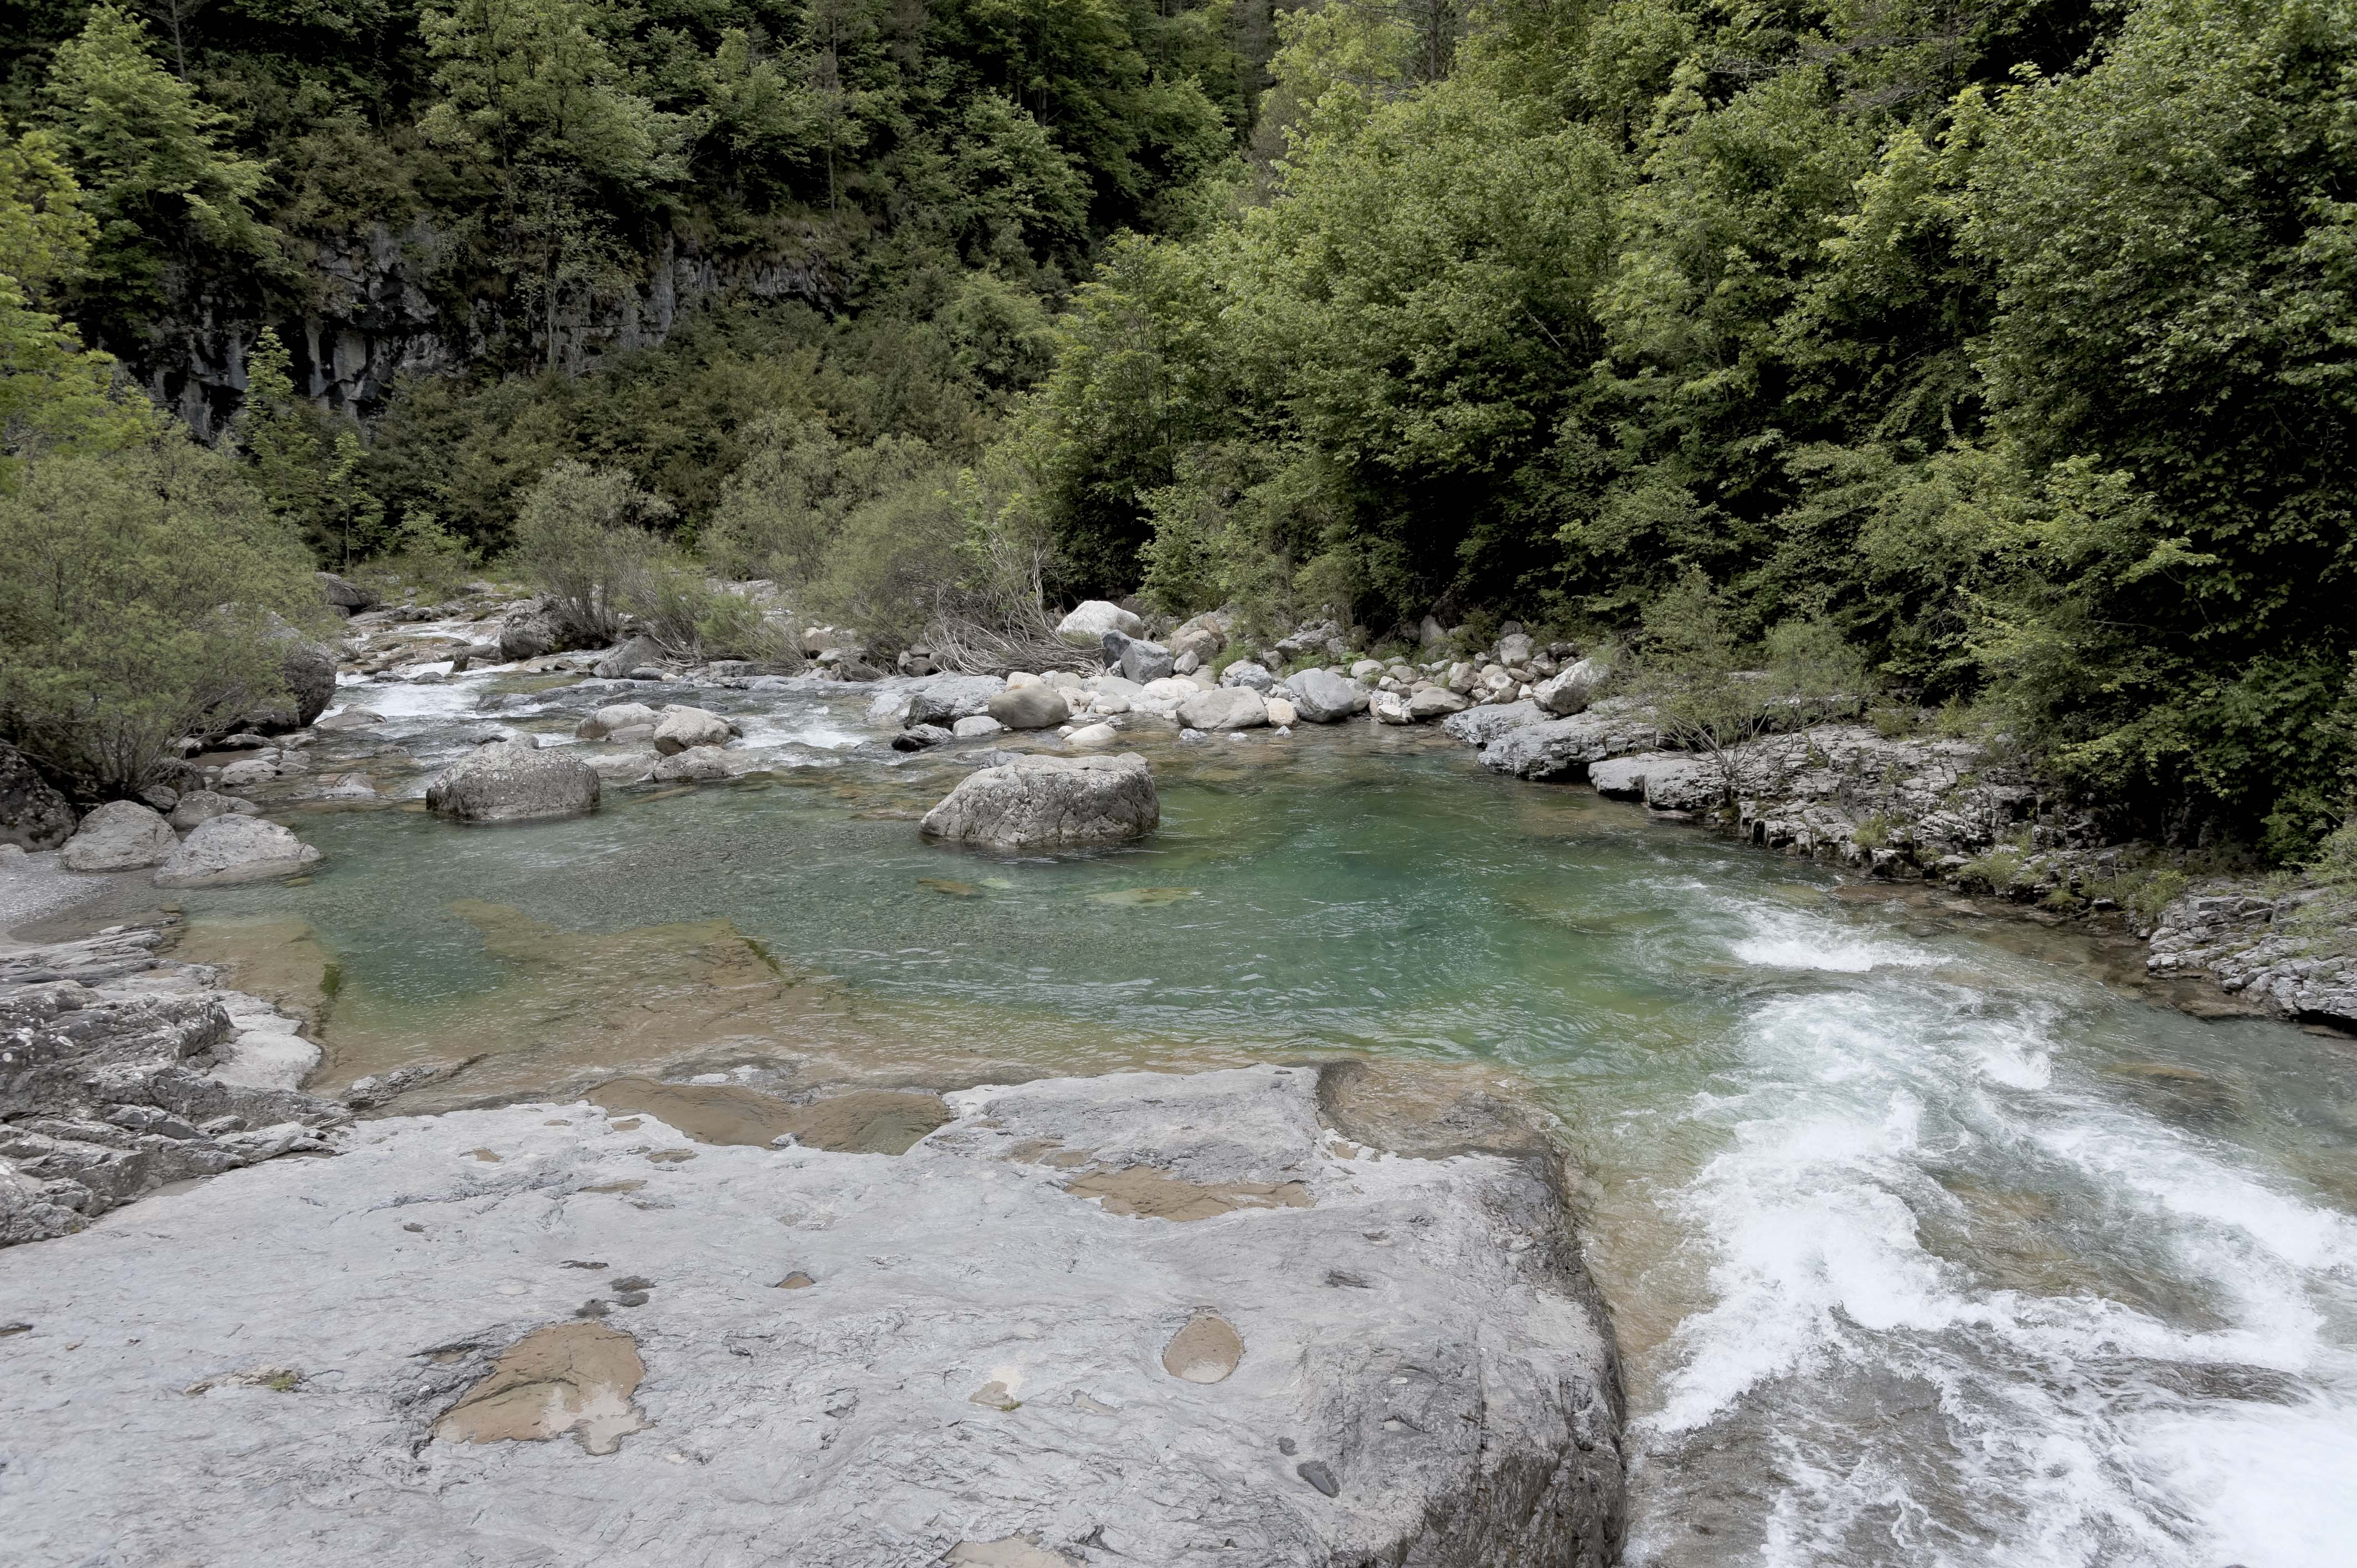 6588_Canyon d'Anisclo (Sobrarbe)